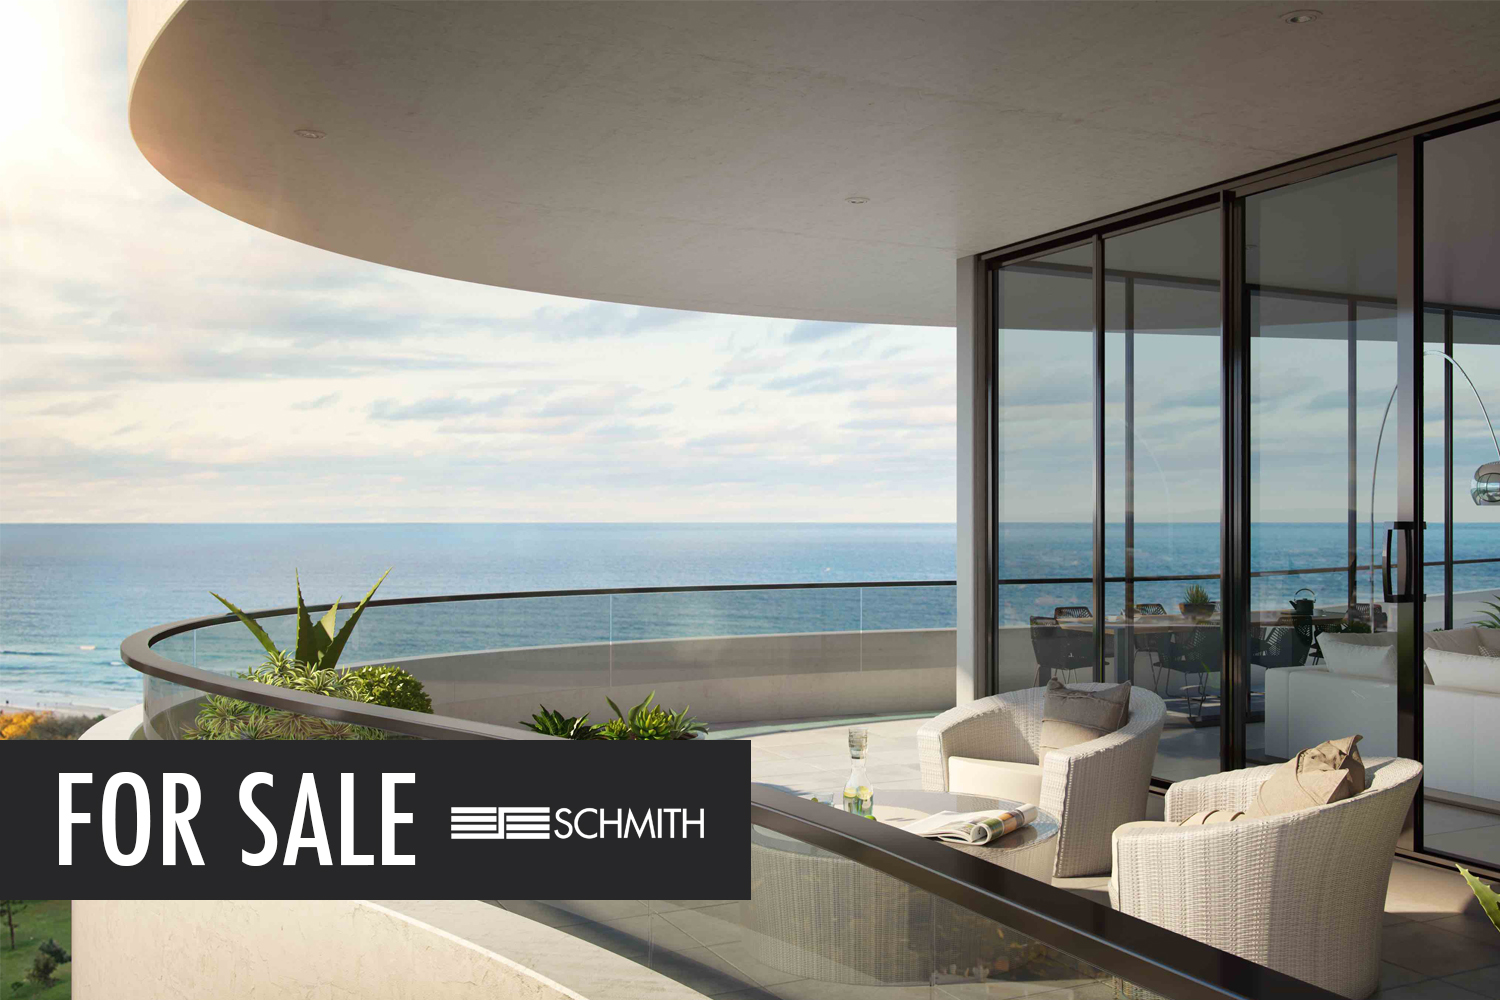 IVY95  95-97 OLD BURLEIGH ROAD, BROADBEACH 4218  FIND OUT MORE